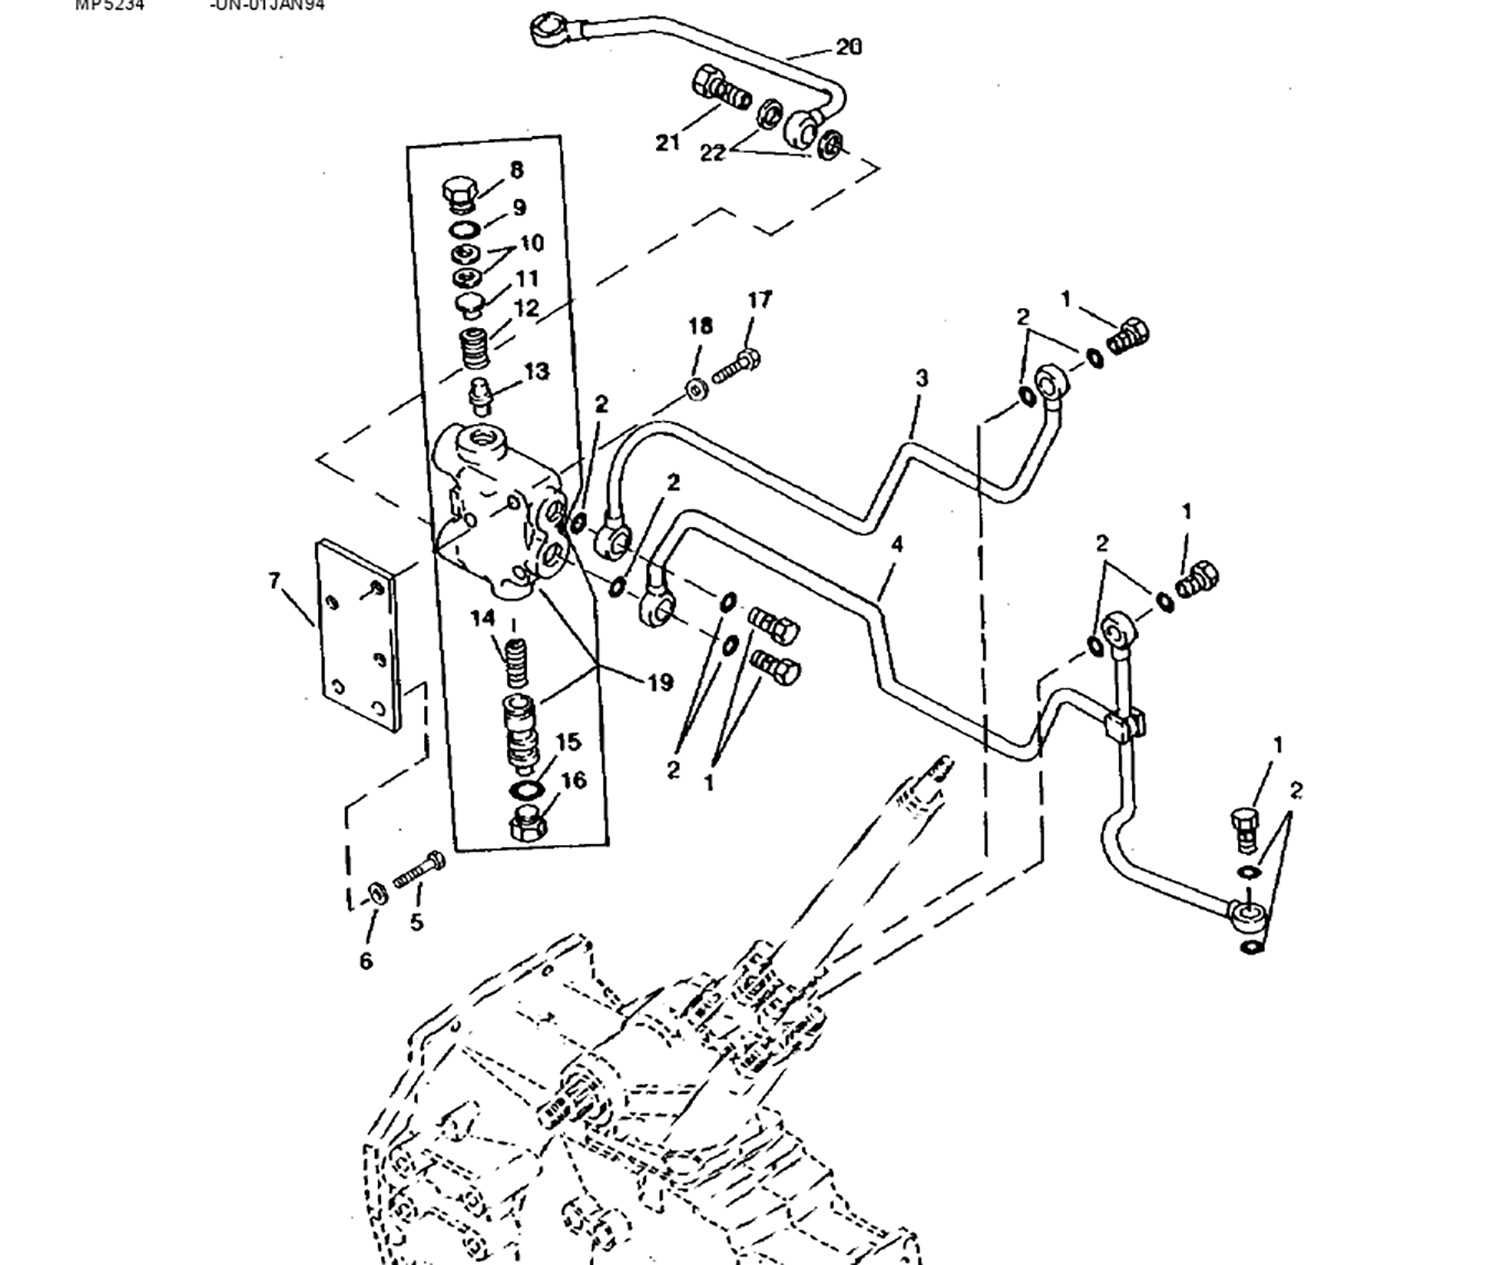 John Deere Schematics 850 on car controls diagram